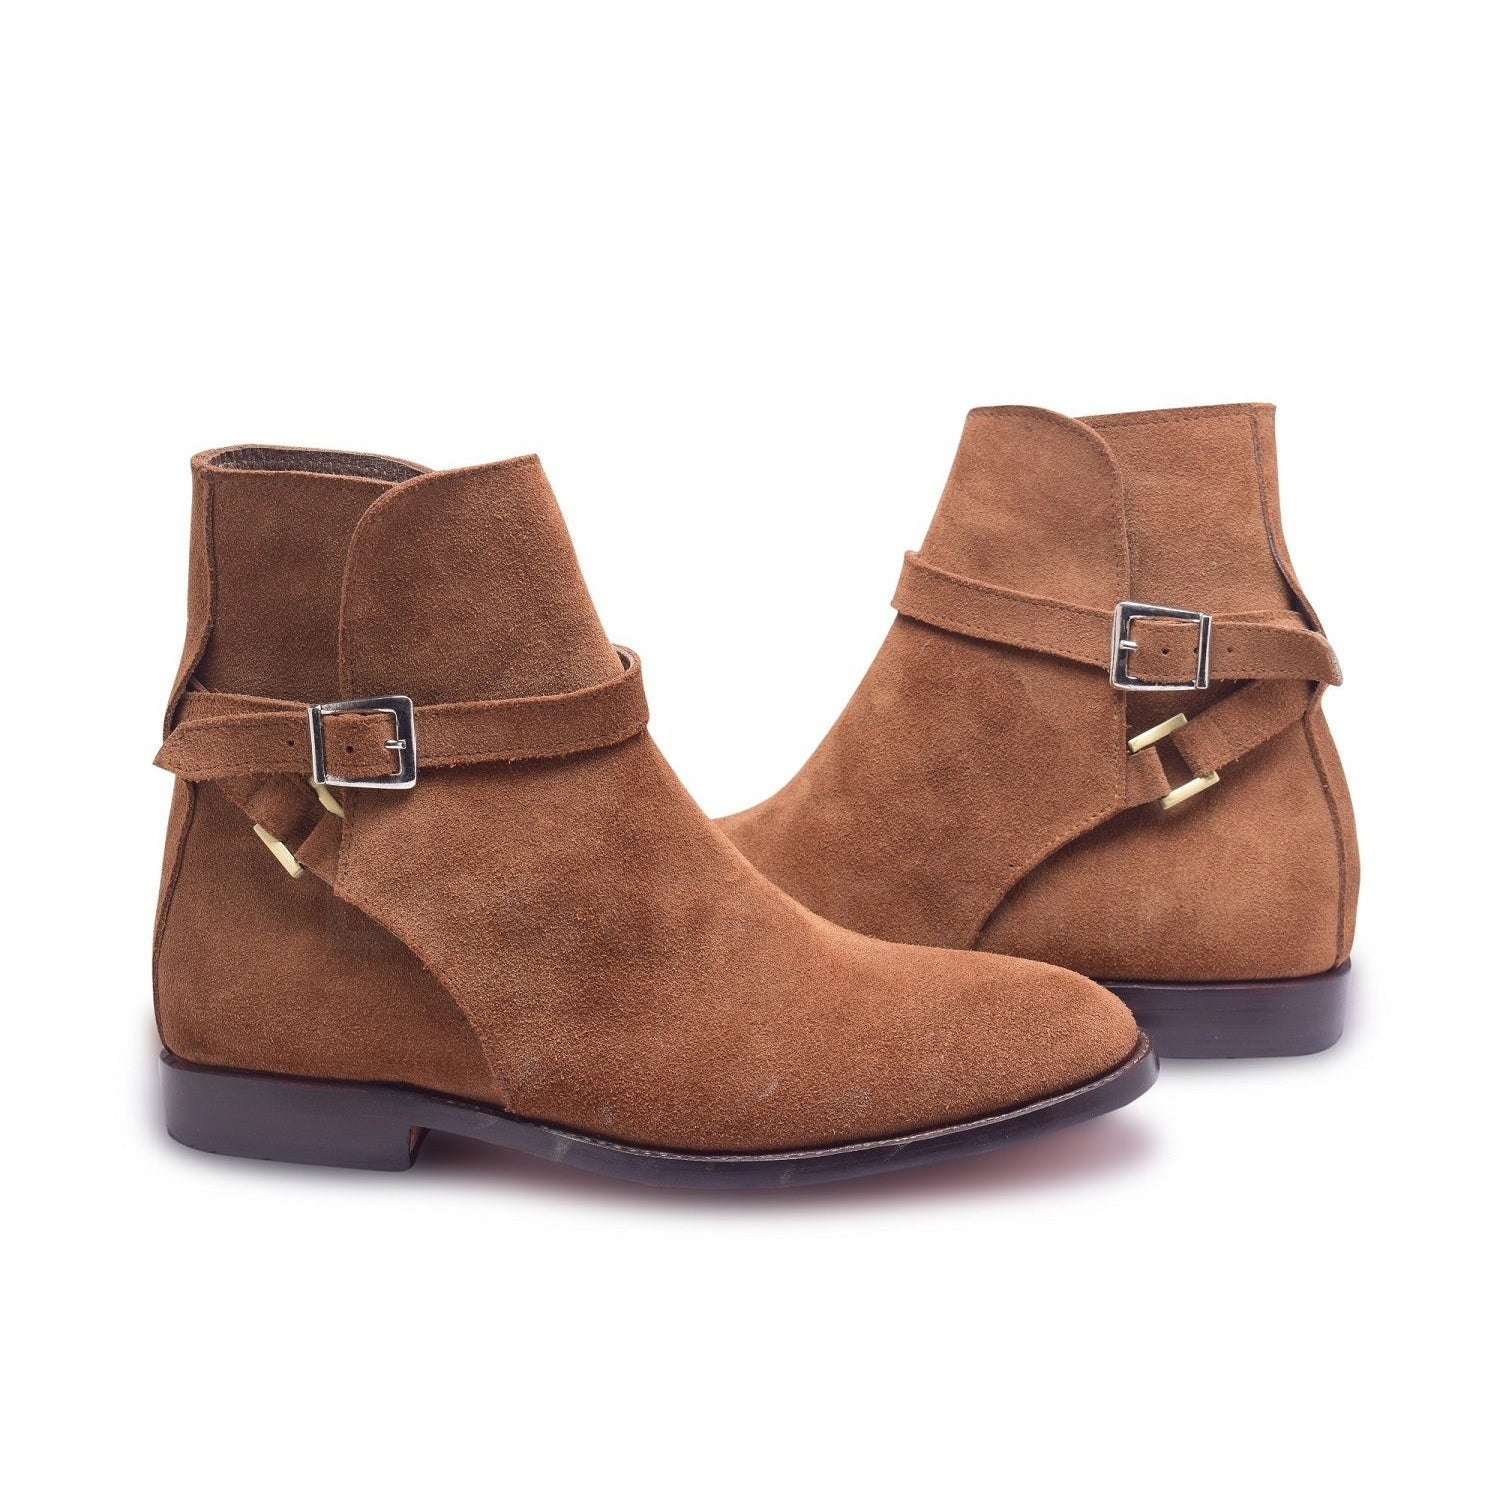 e1d6763b5121 Men Brown Jodhpurs Ankle Handmade Suede Leather Boots – Leather Skin ...